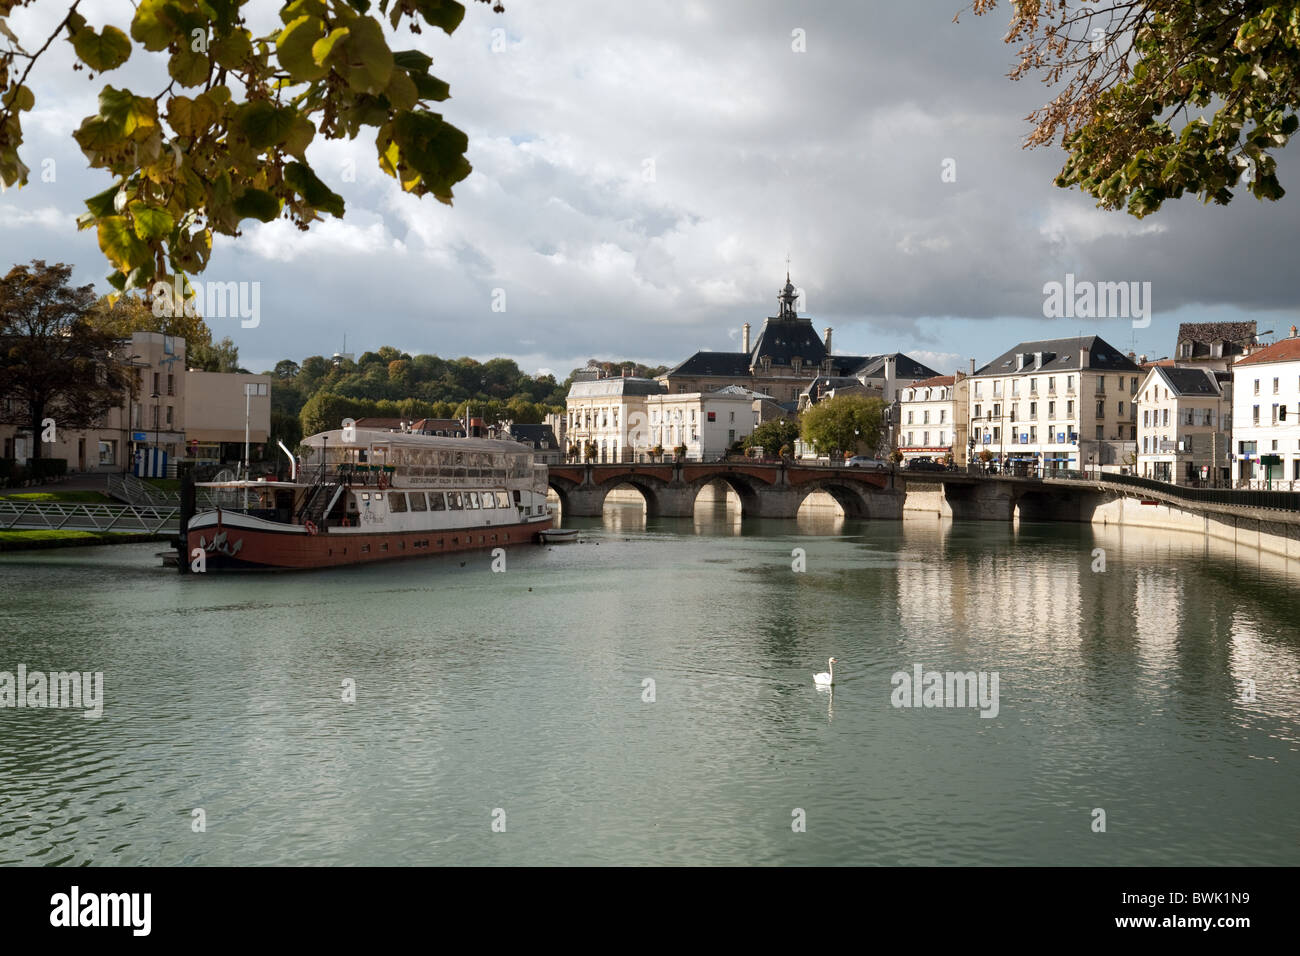 Swan on the river Marne in Meaux, Ile de France Northern France - Stock Image